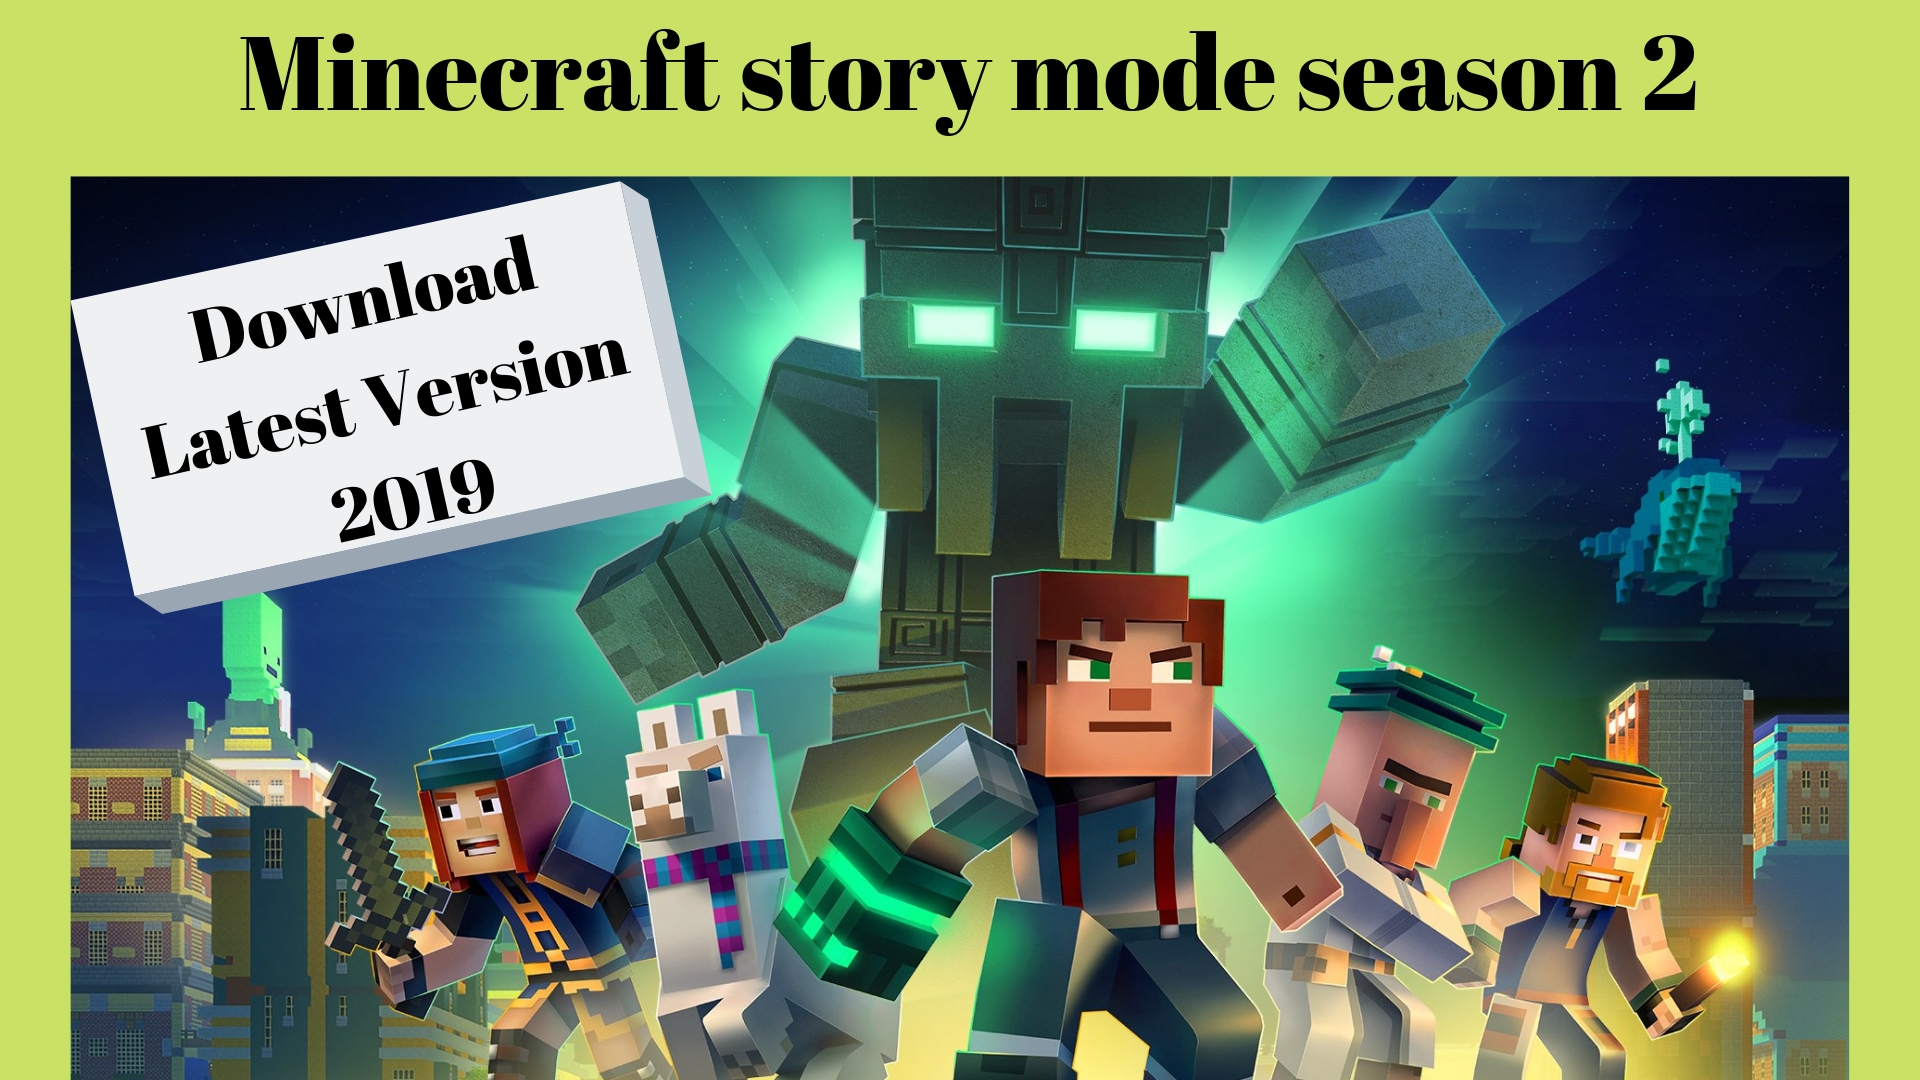 Minecraft Story Mode Season 2 Download Latest Version 2019 The